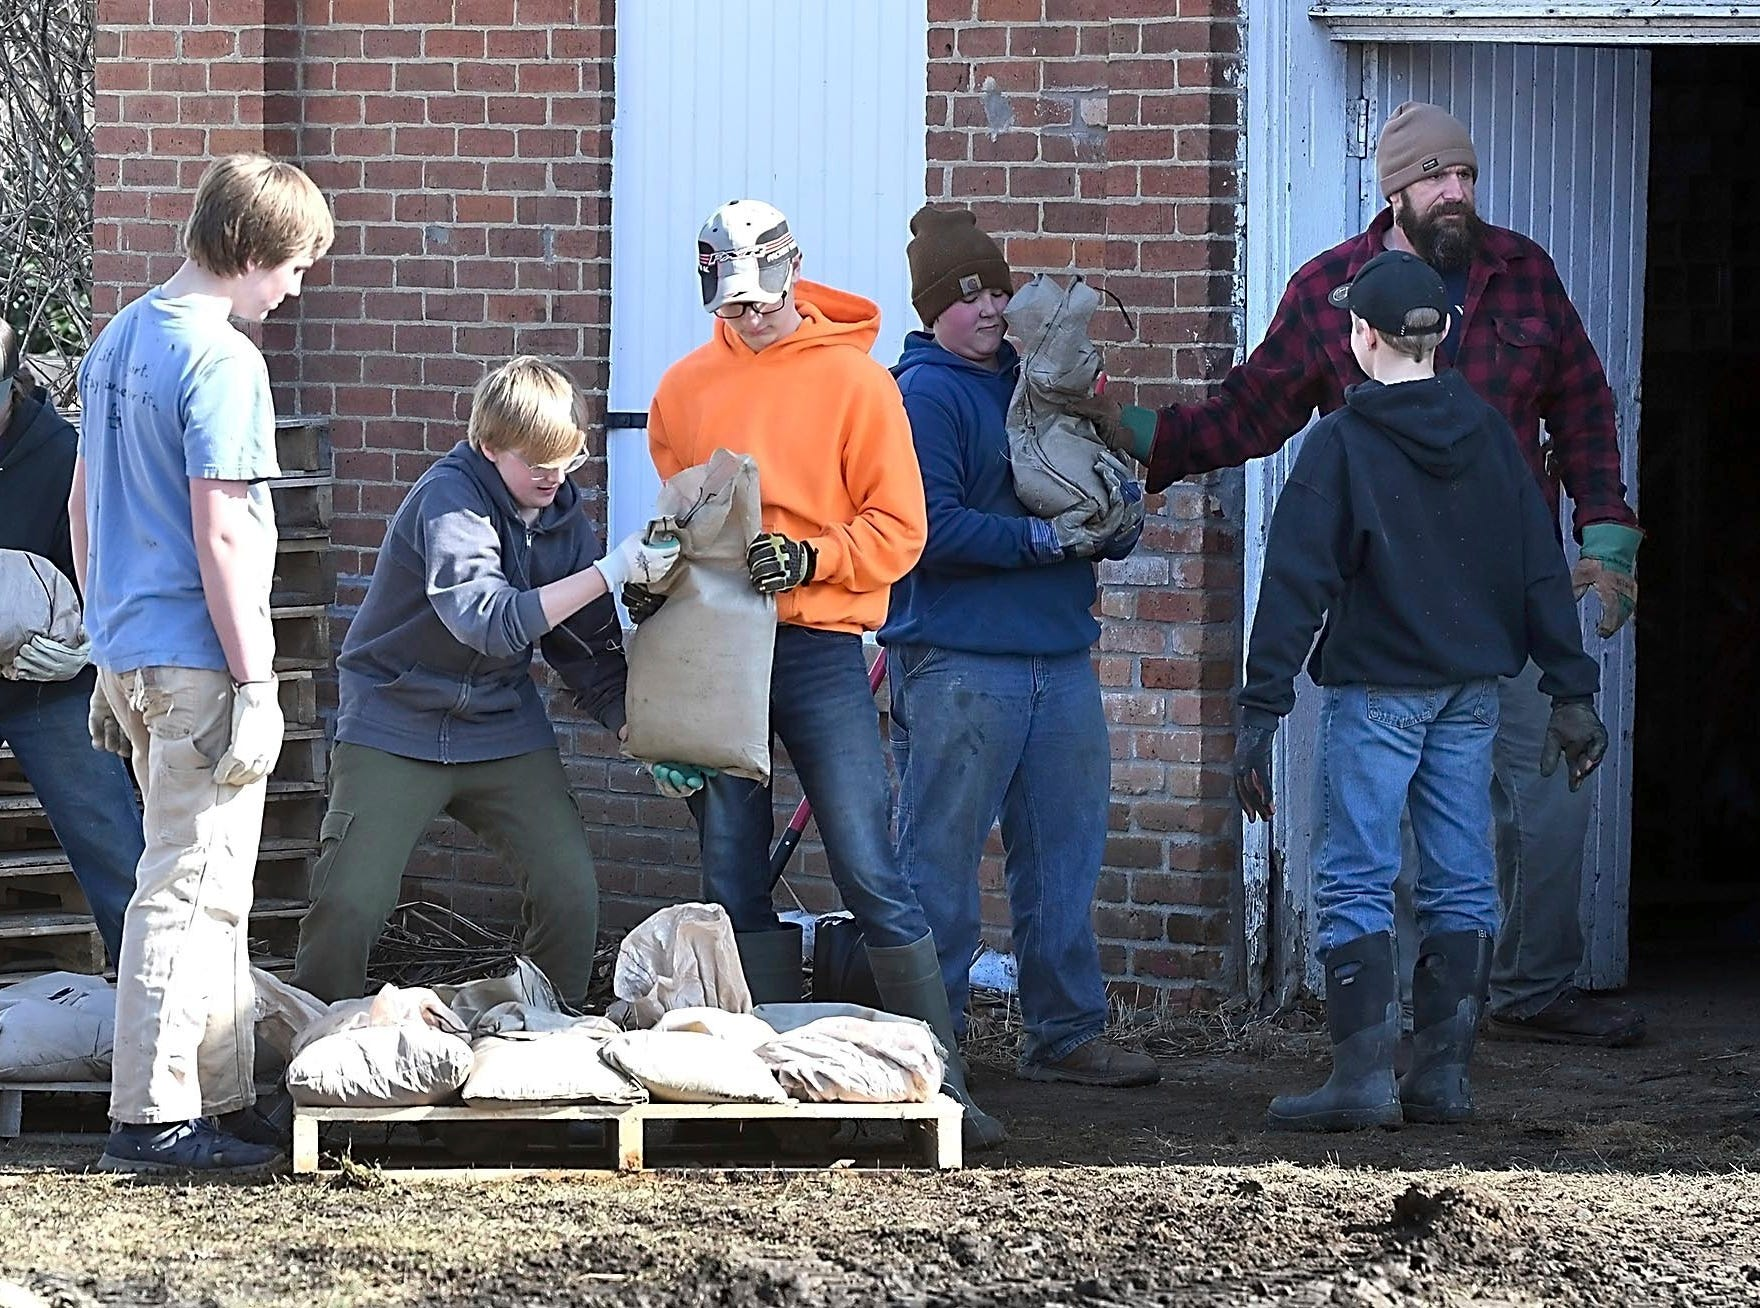 Students and teachers from Minnesota New Country School in Henderson, Minn., help stack sandbags on a pallet Wednesday, March 20, 2019.